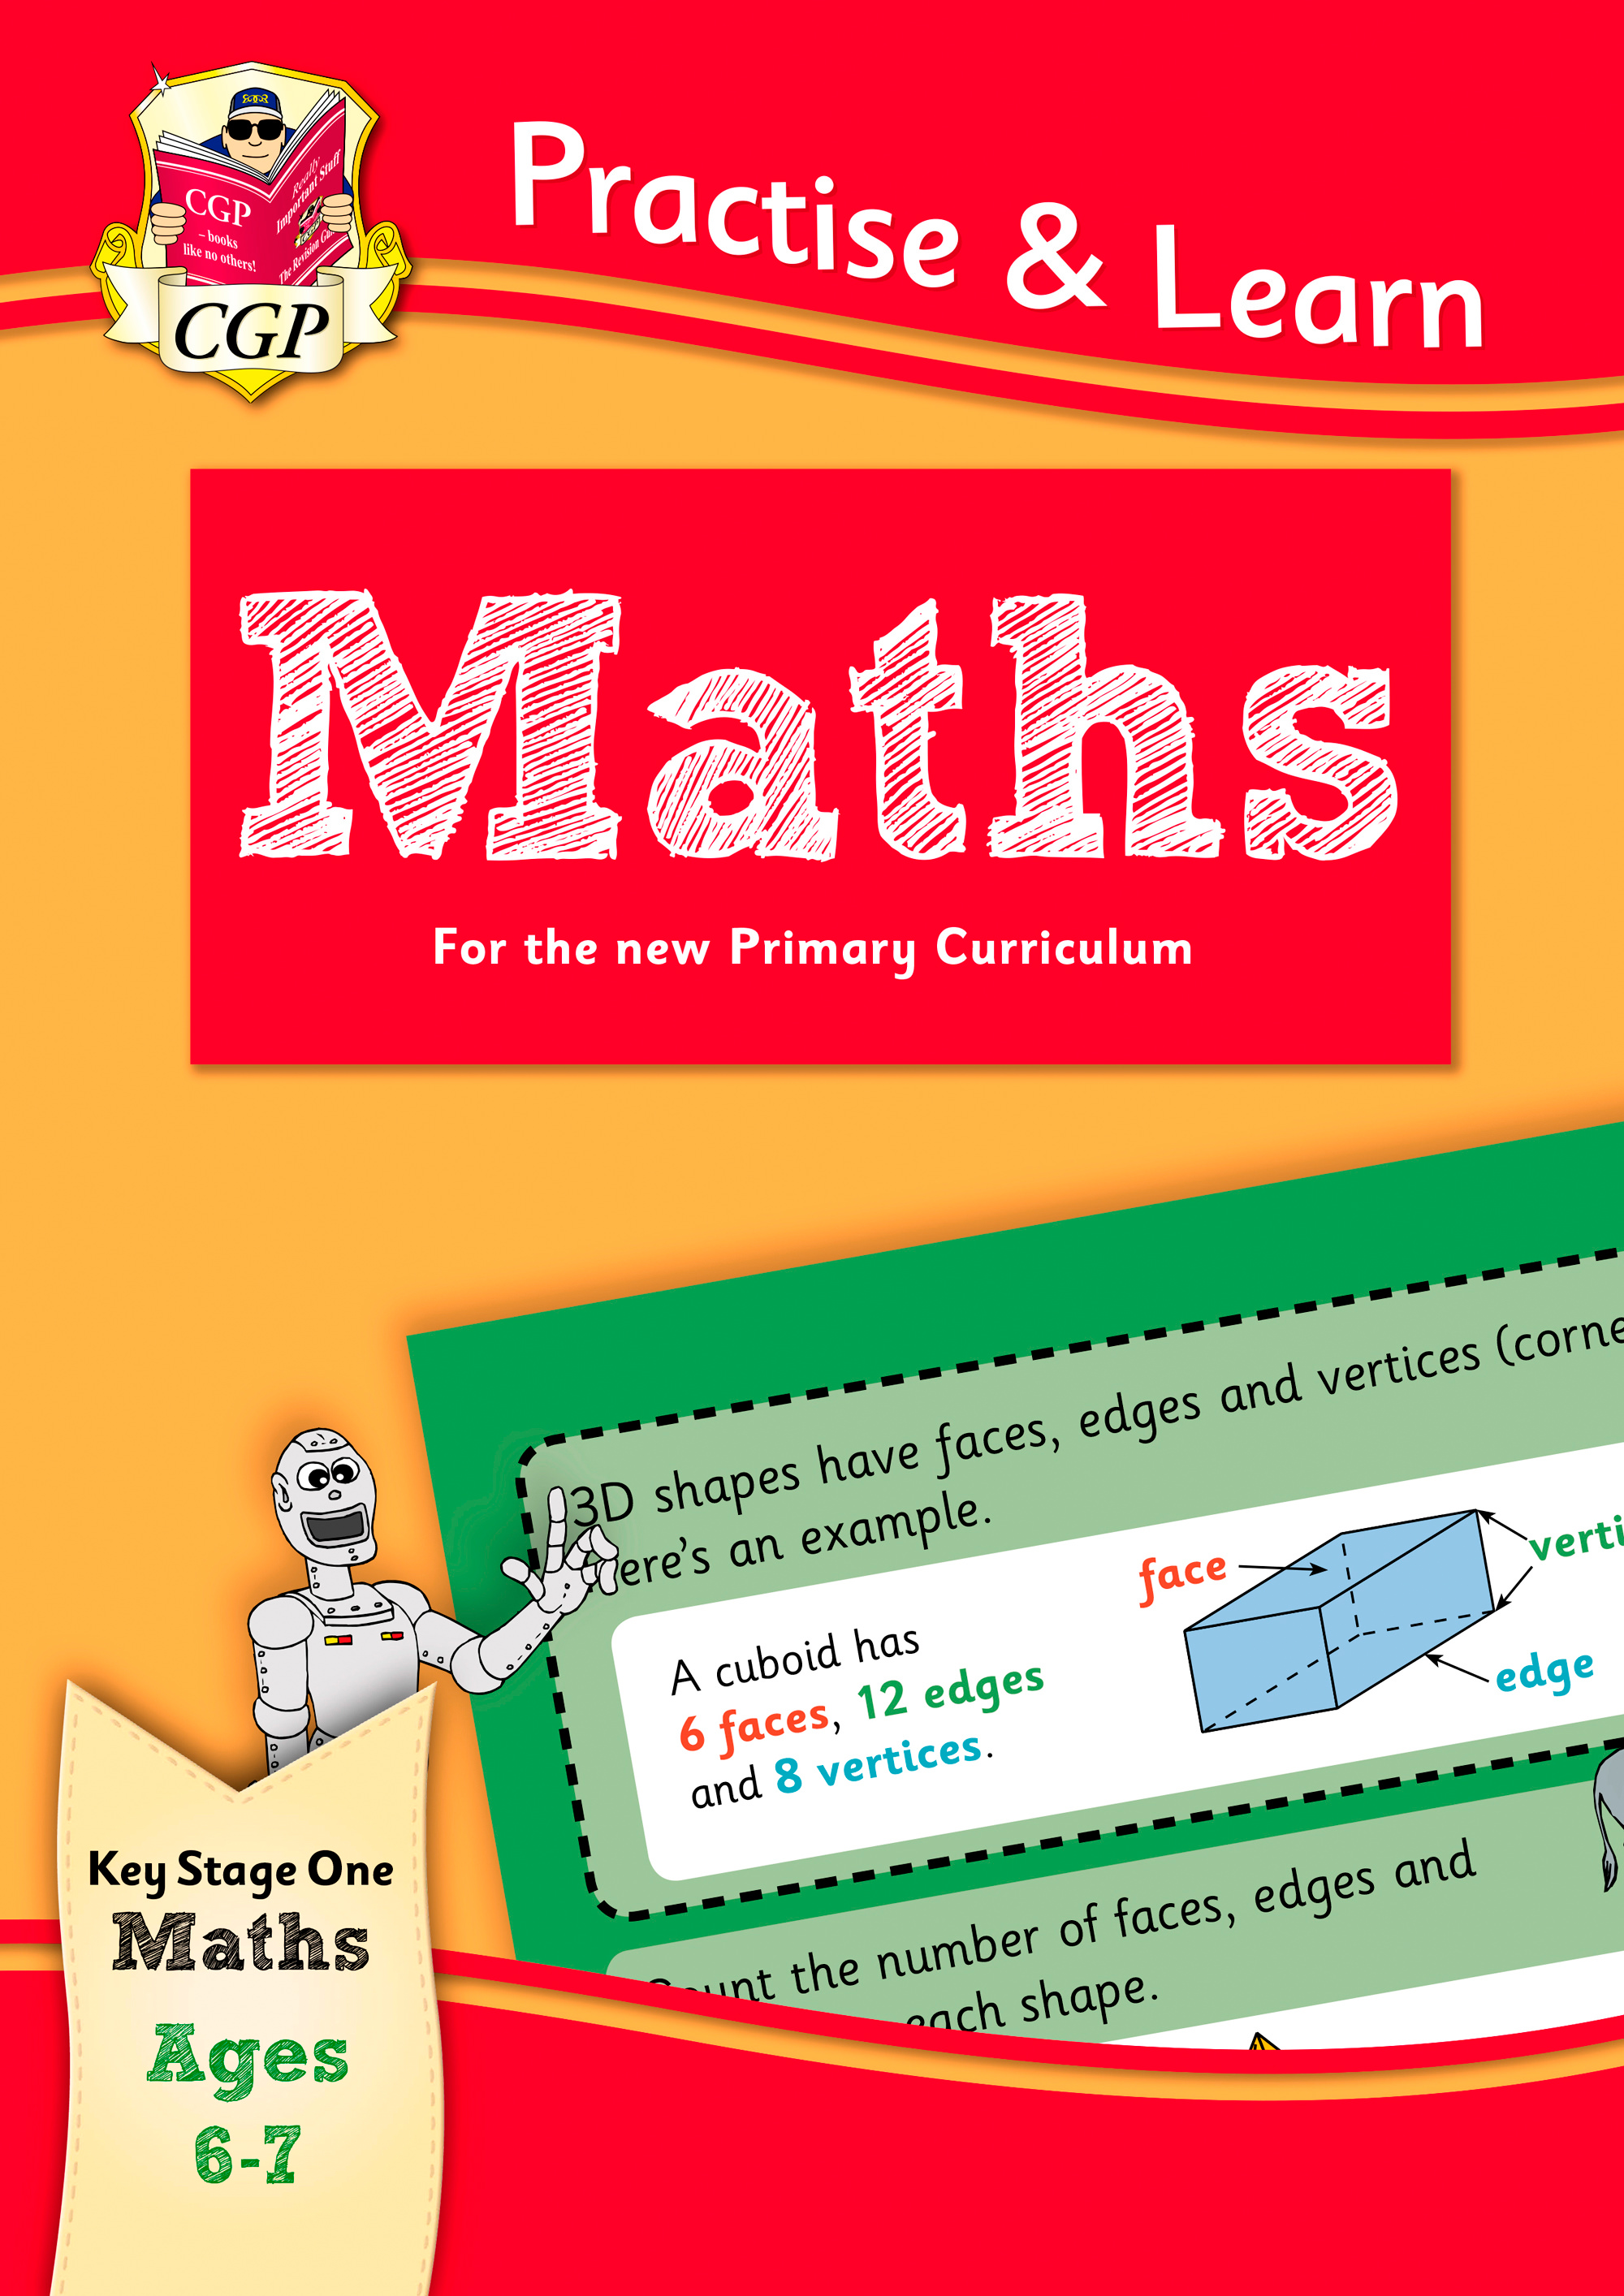 MP2Q12DK - New Curriculum Practise & Learn: Maths for Ages 6-7